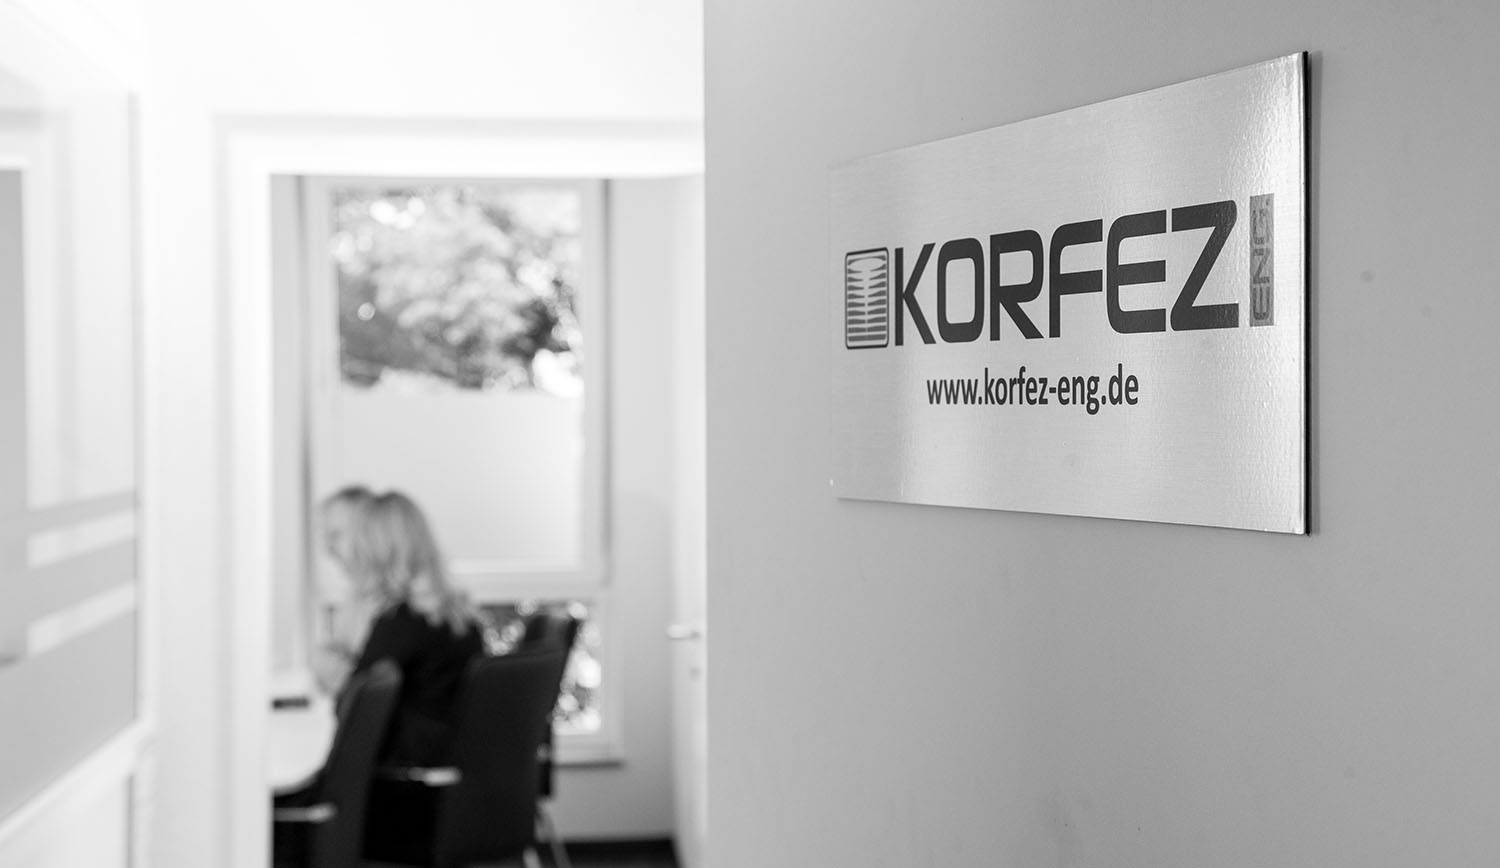 New offices for KORFEZ ENG.